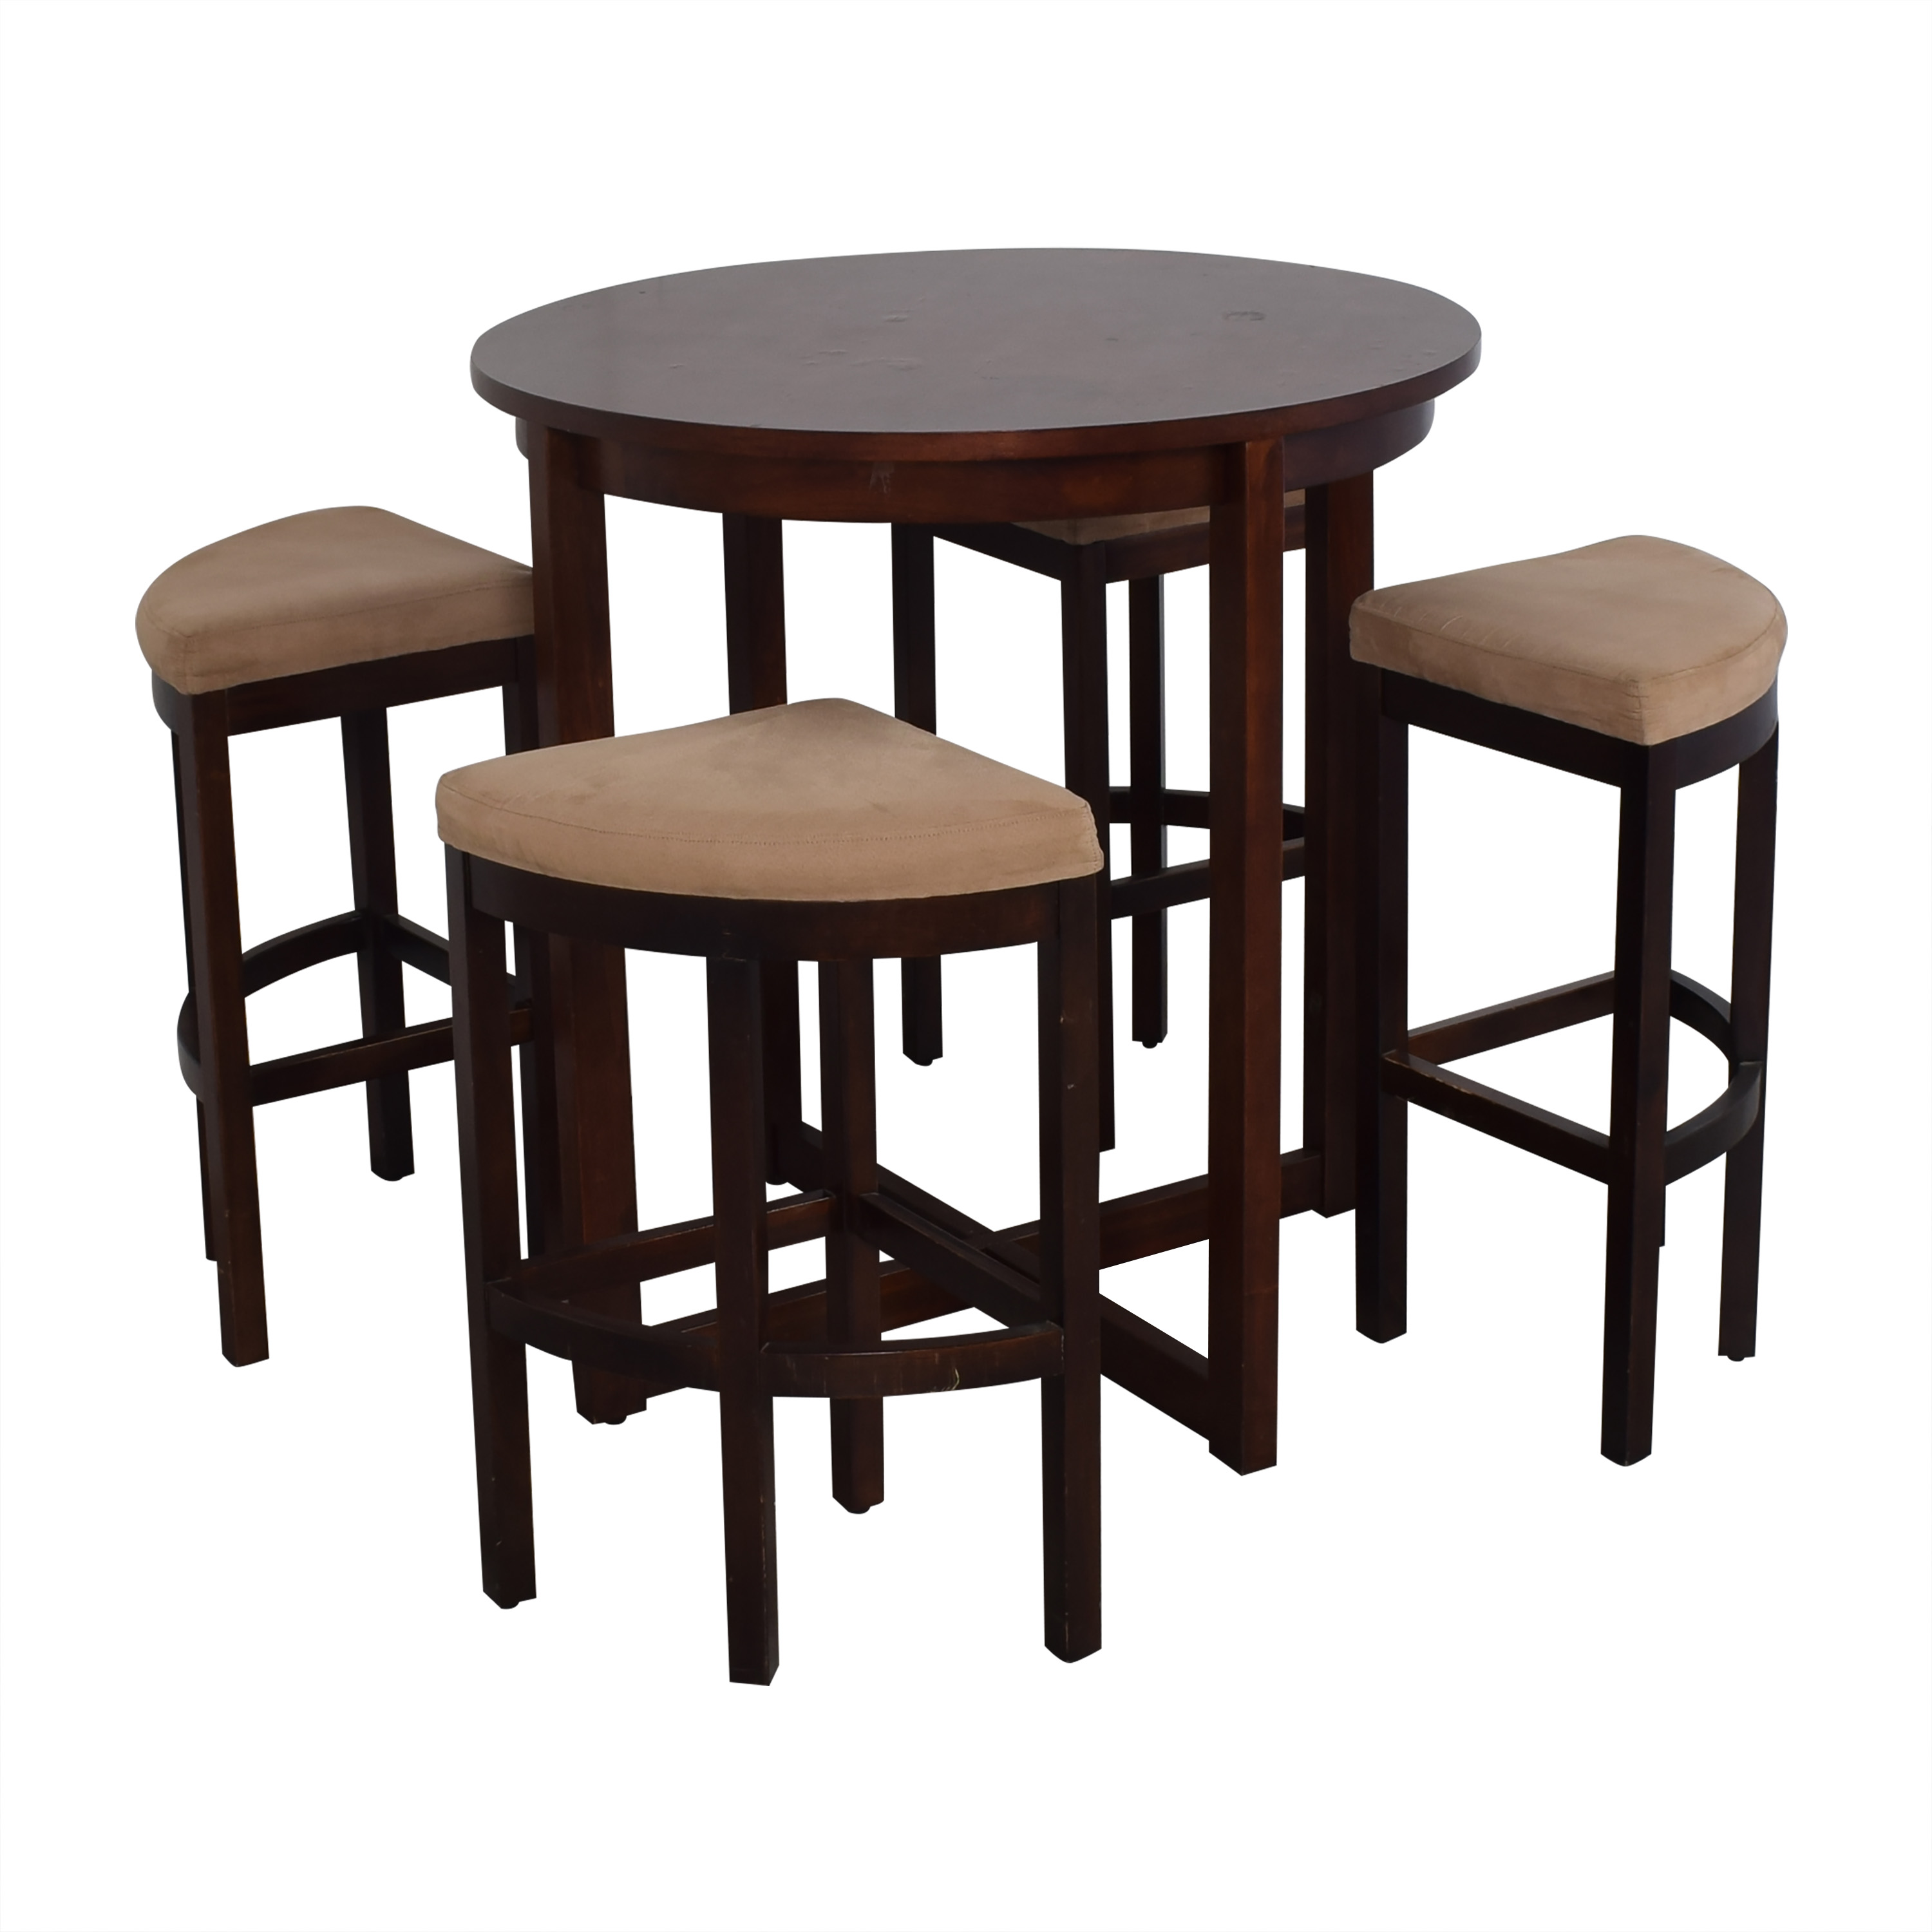 buy Raymour & Flanigan Round Table and Stools Raymour & Flanigan Dinner Tables